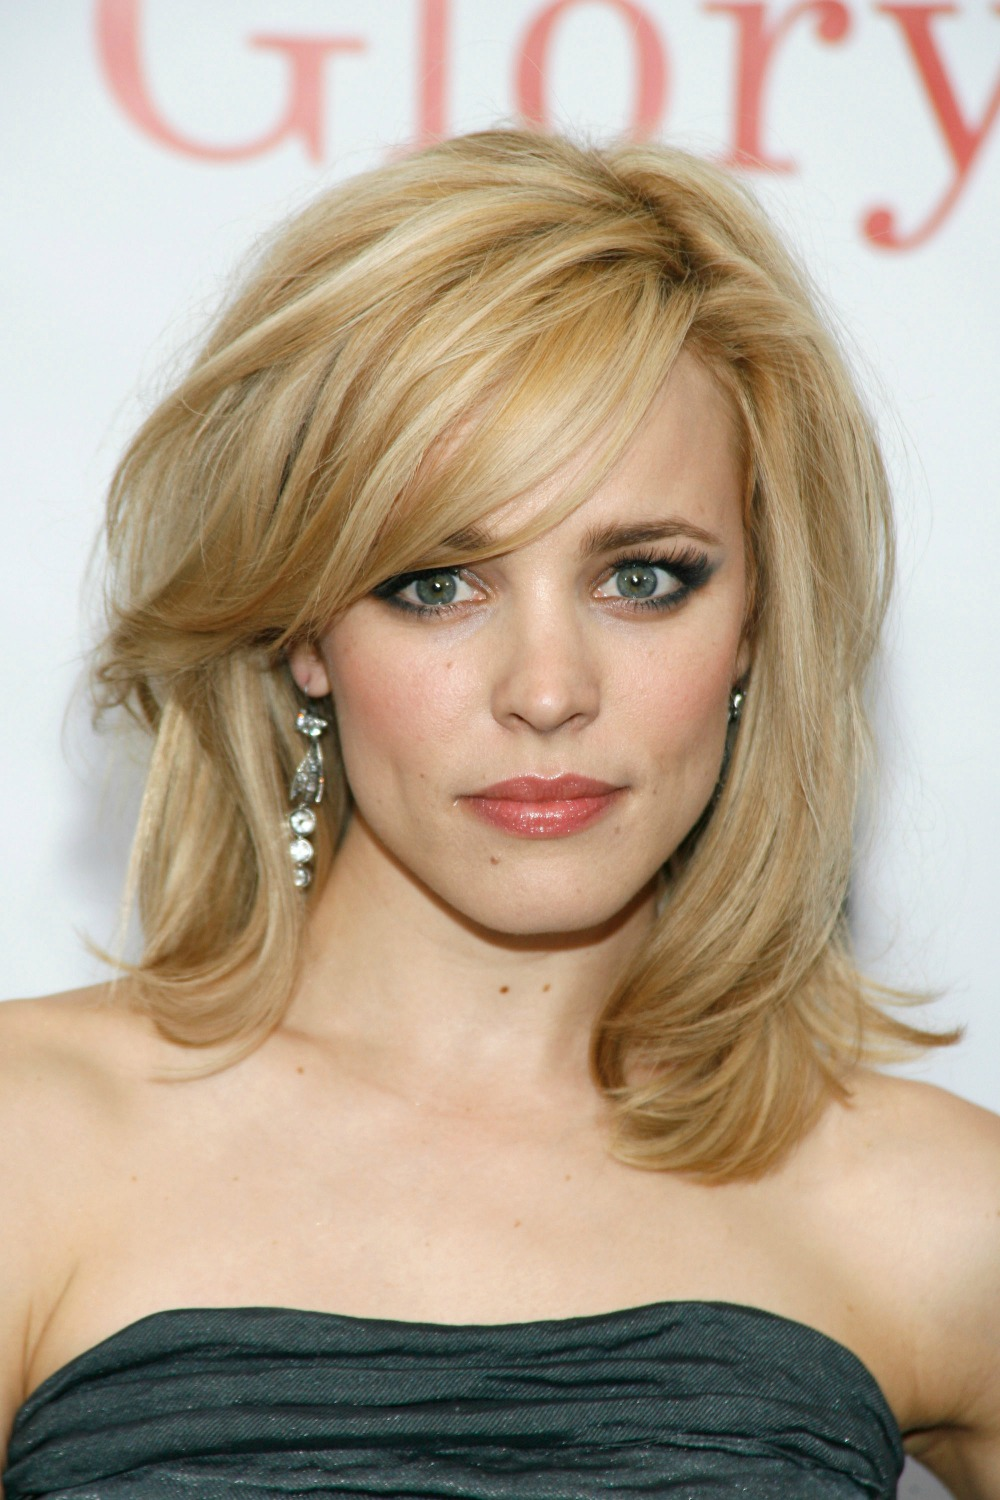 Tremendous 25 Medium Length Hairstyles You39Ll Want To Copy Now Short Hairstyles Gunalazisus